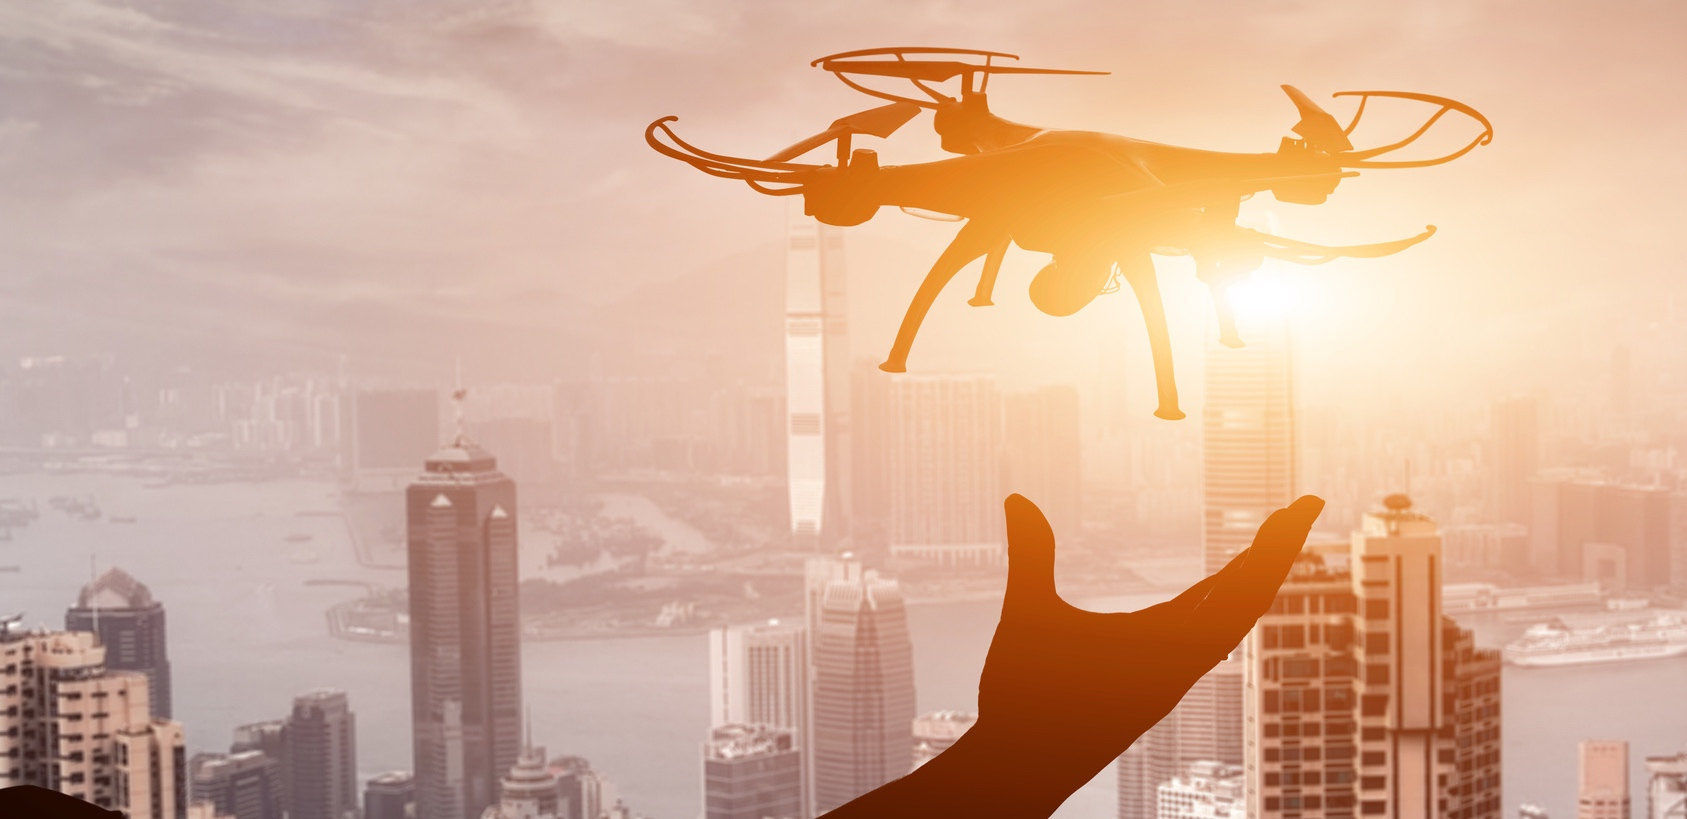 silhouette of drone concept in the city